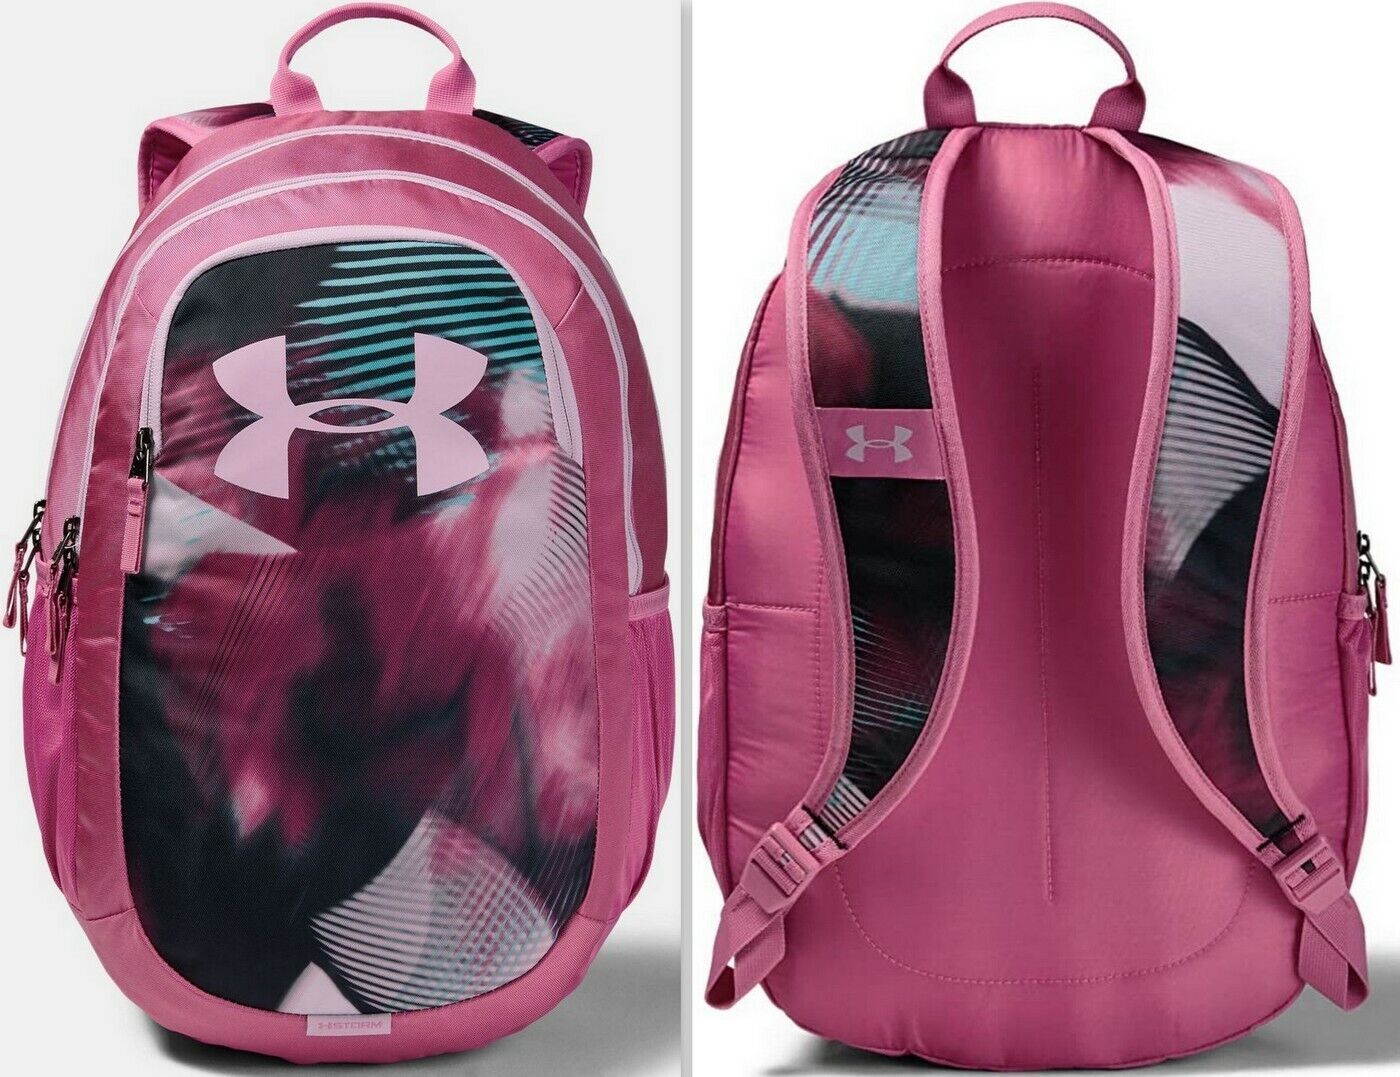 Under Armour UA Kids' Scrimmage 2.0 Backpack, Pace Pink/Pace